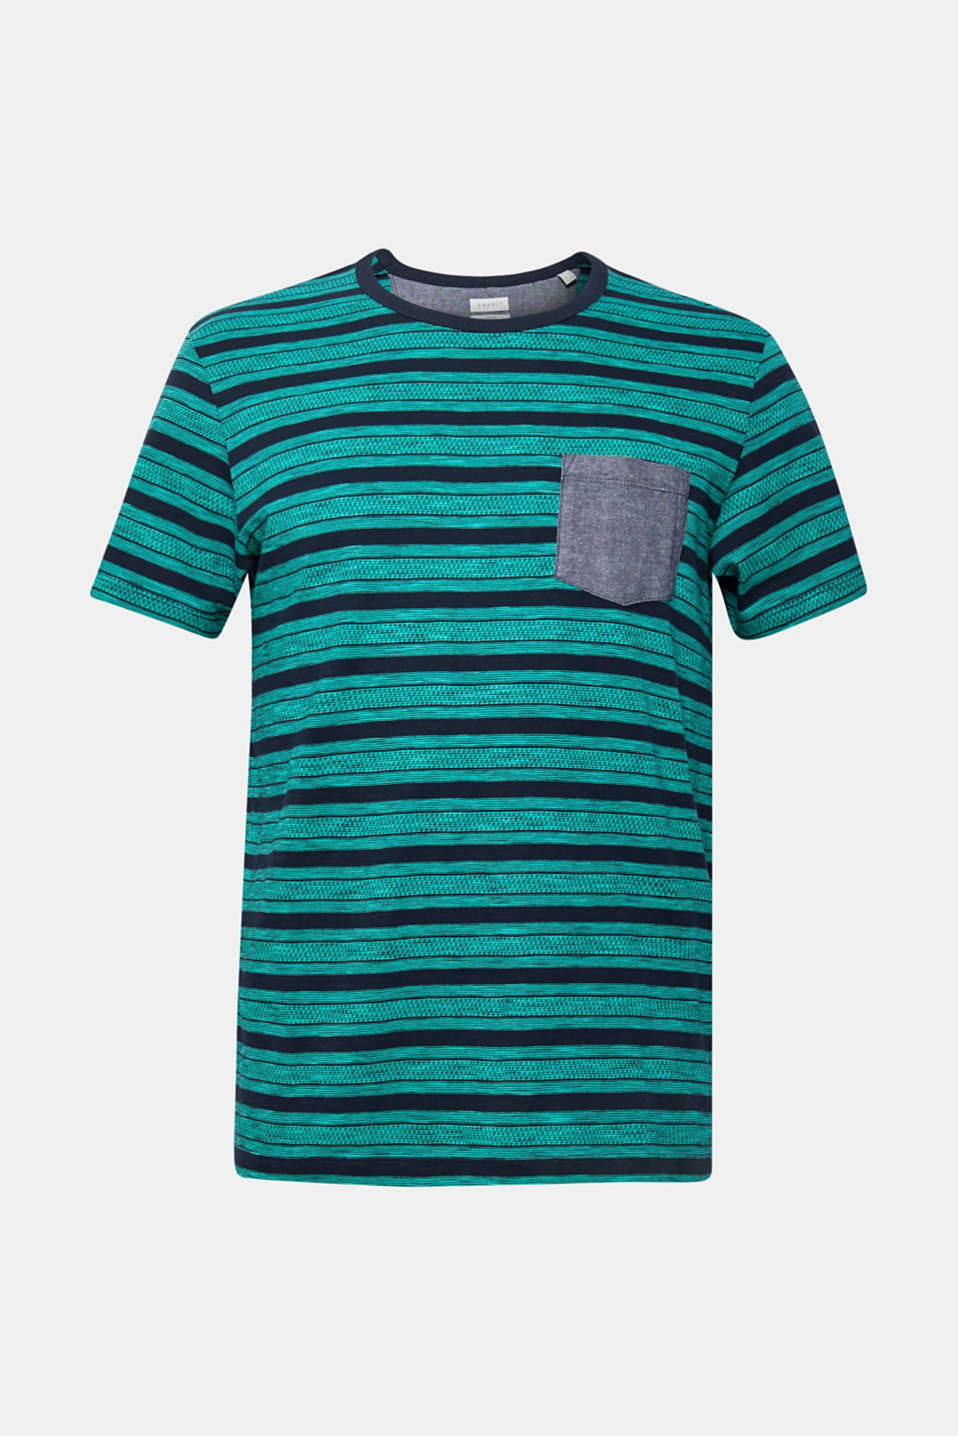 Jersey T-shirt with tribal stripes, 100% cotton, NAVY, detail image number 6